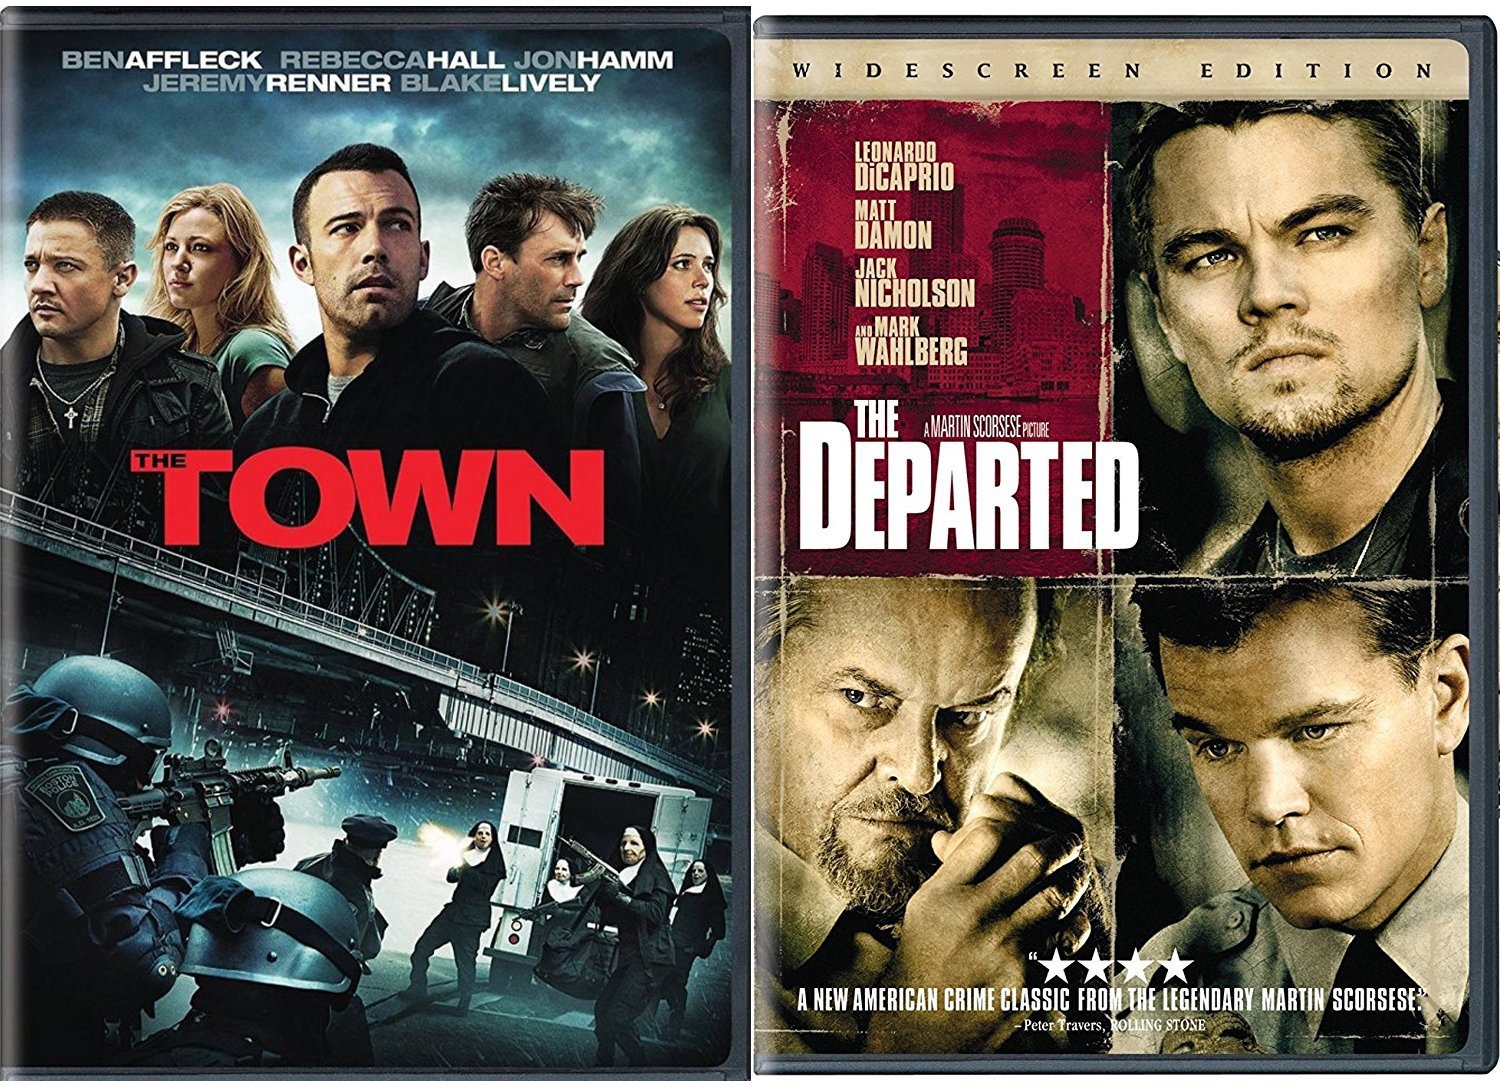 Amazon.com: The Departed & The Town DVD 2 Pack Leonardo DiCaprio & Ben  Affleck Double Feature Movie Set: Leonardo DiCaprio, Ben Affleck, Martin  Scorsese: Movies & TV